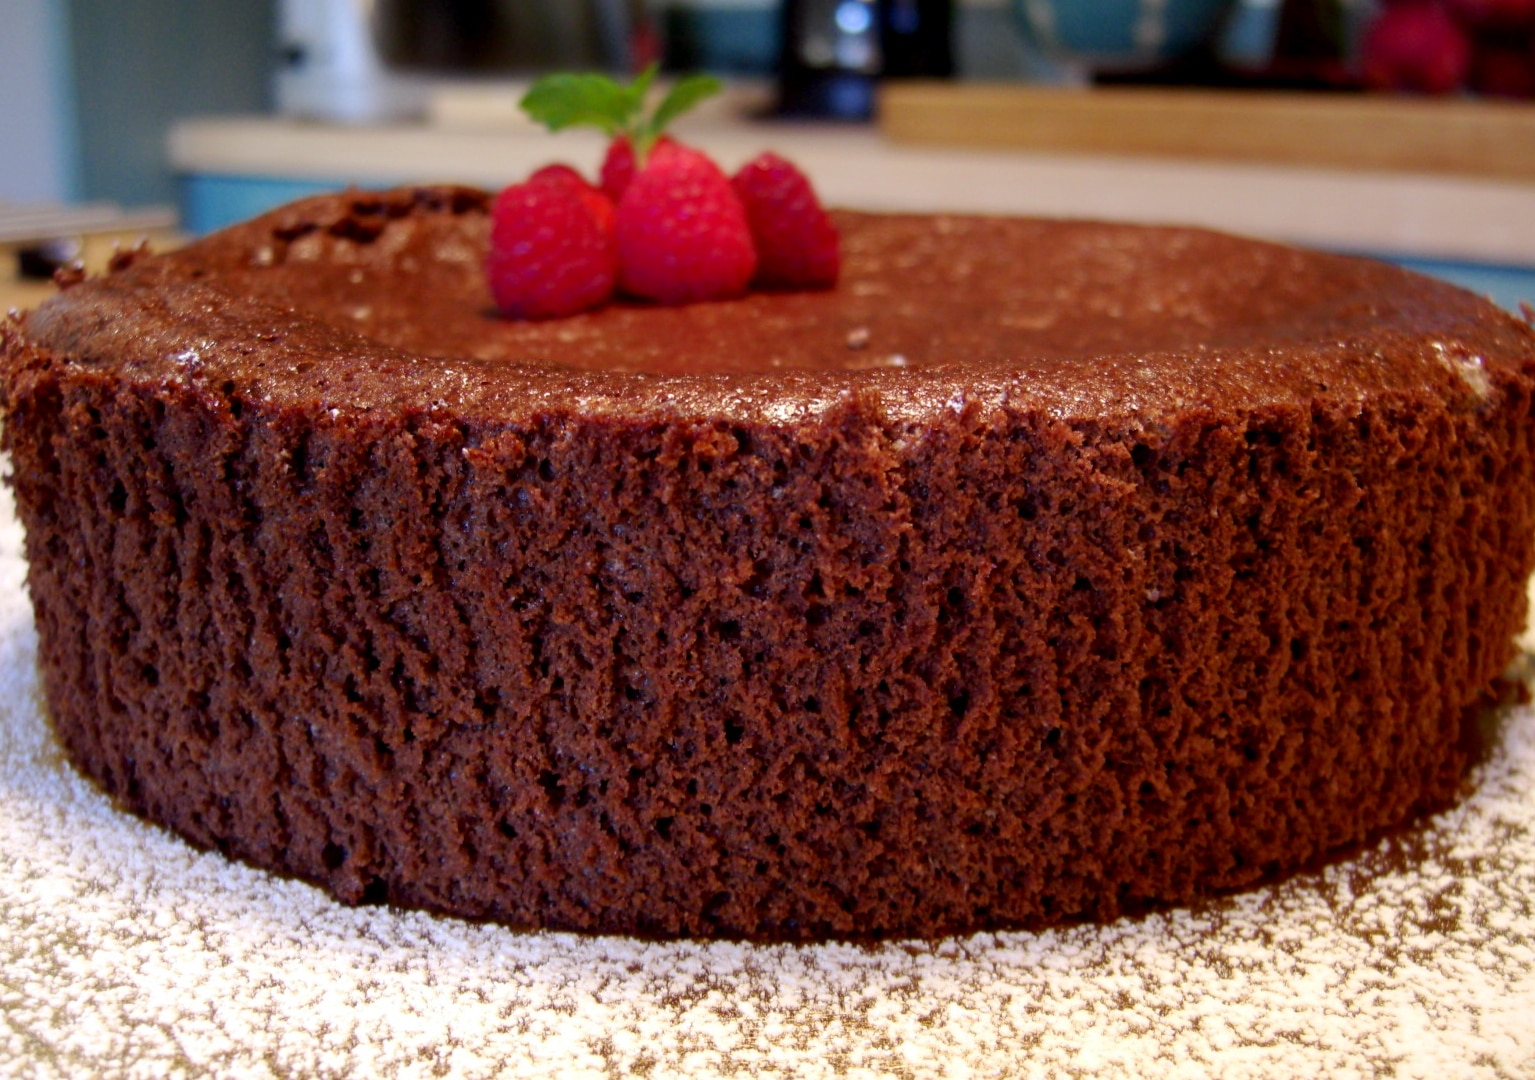 Decadent and Guilt Free Dark Chocolate Mousse Cake